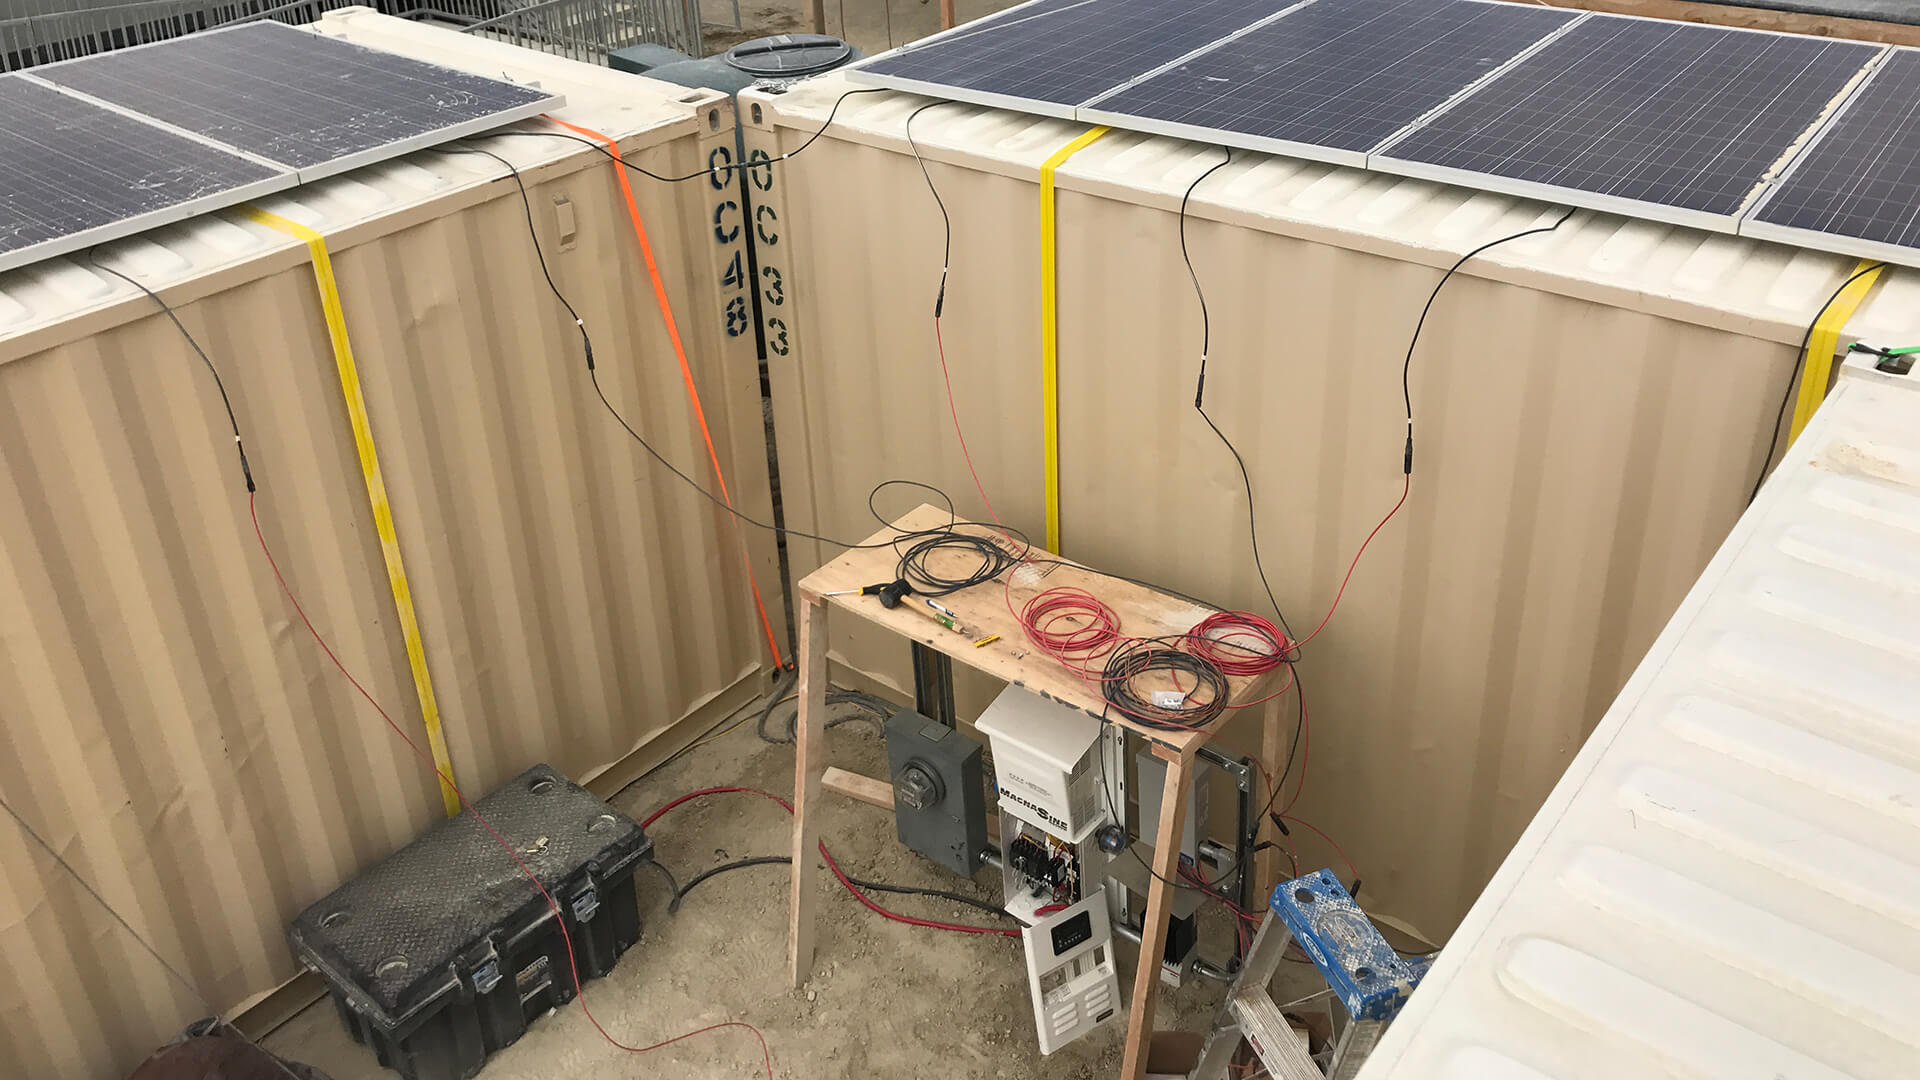 Wiring up the solar array to the inverter and SimpliPhi batteries which are located in the sealed black strongbox.